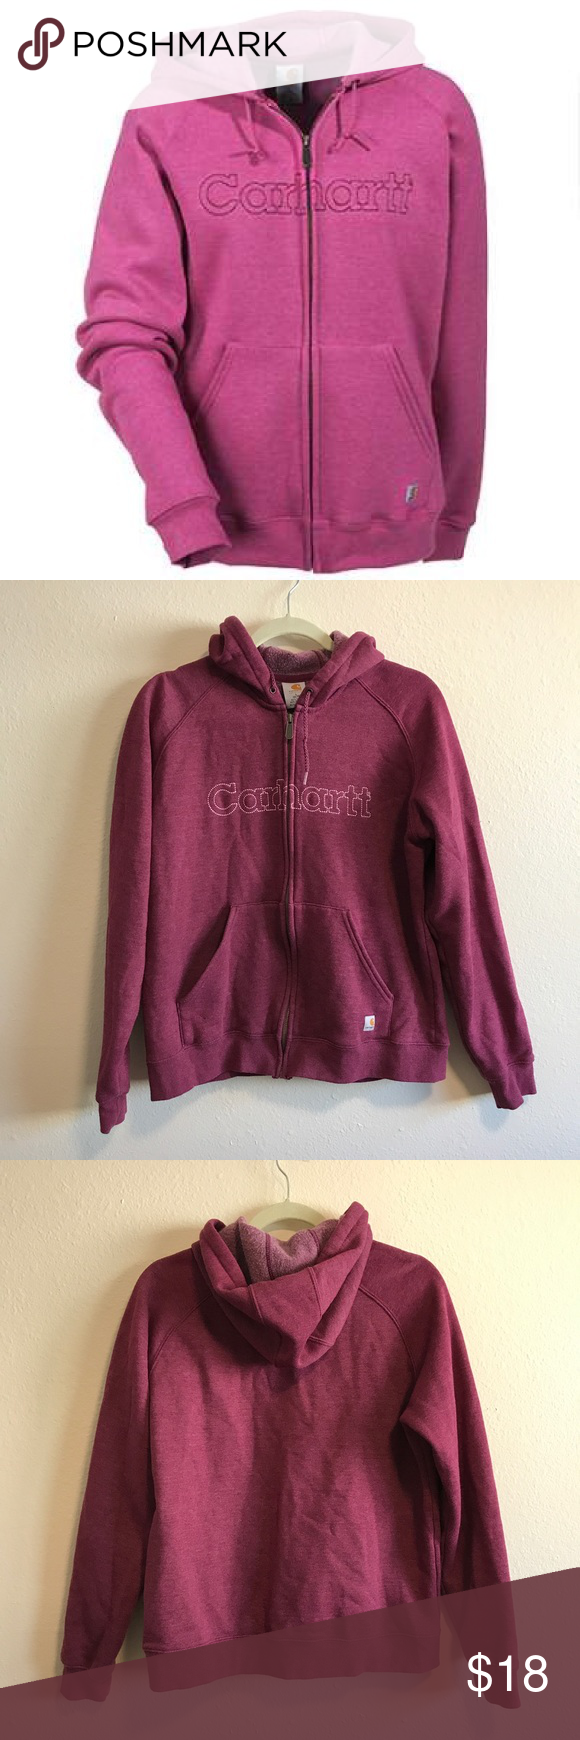 Zip up sweater with hood | Hoods, Conditioning and Purple